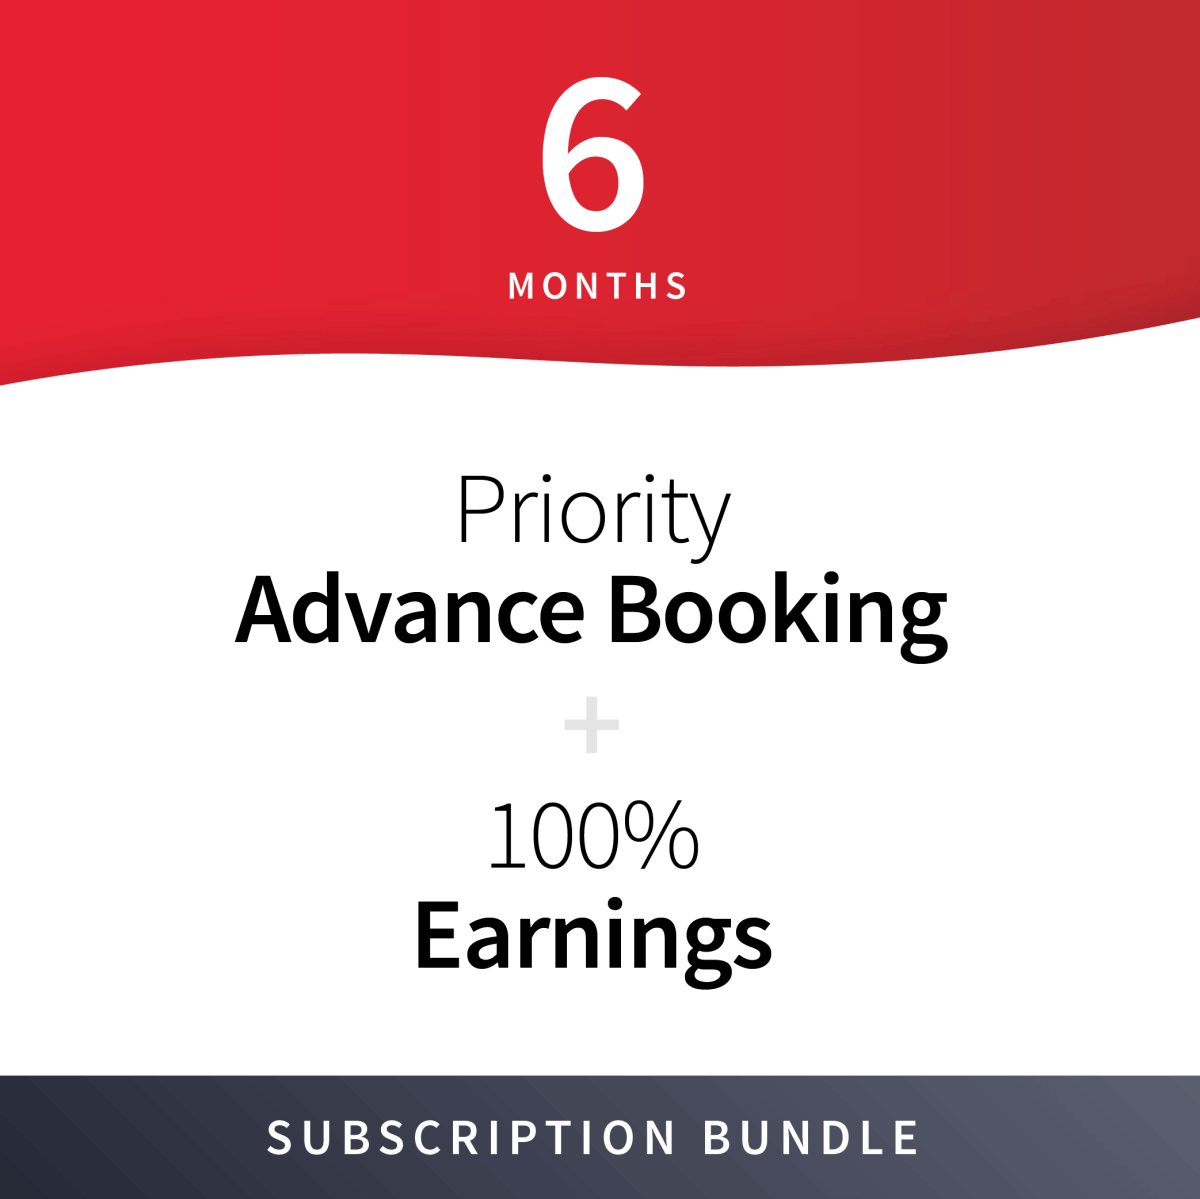 100% Earnings + Priority Advance Booking Subscription Bundle - 6 Months 1